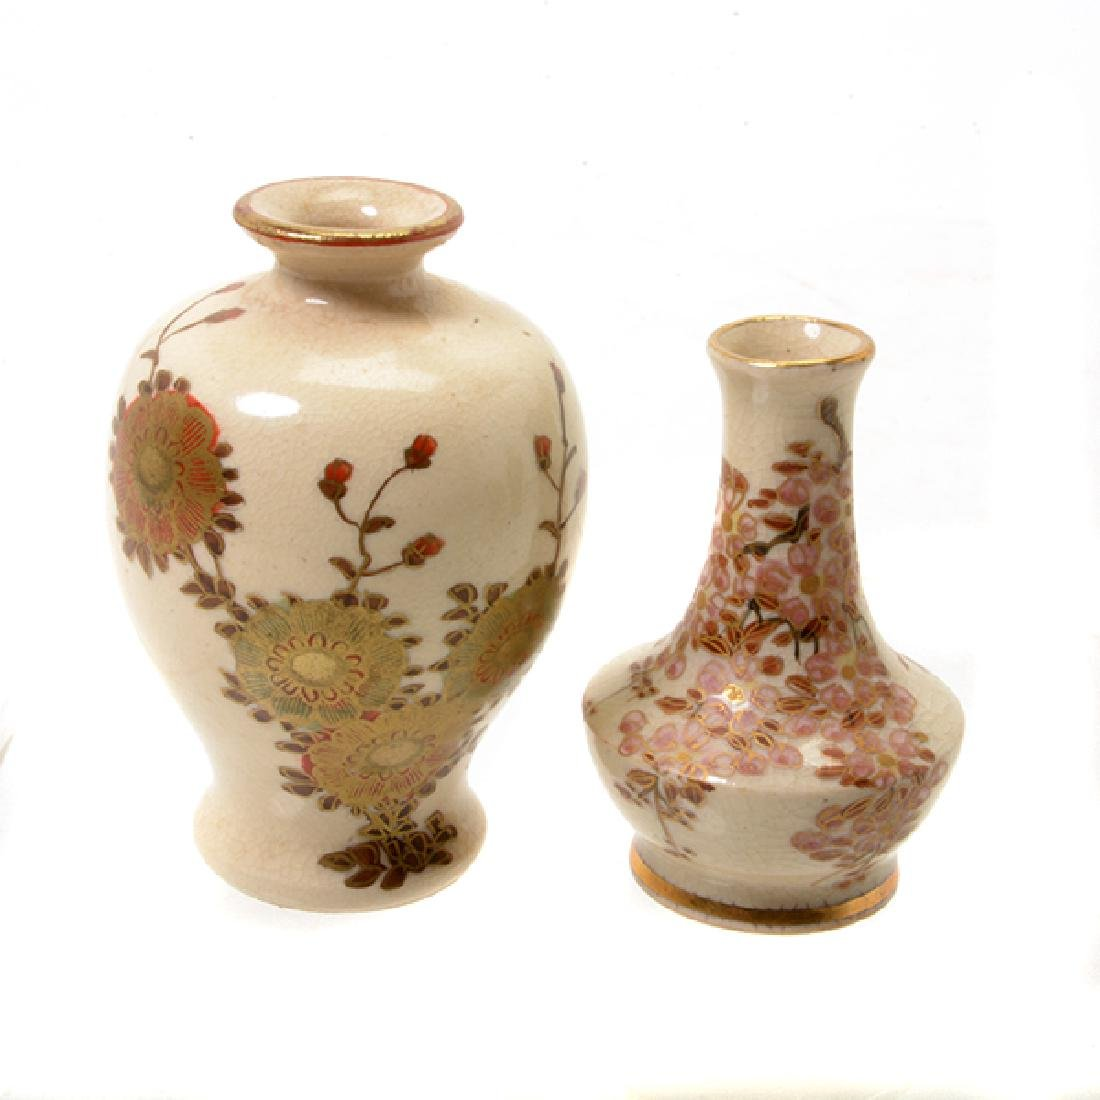 A Group of Satsuma Ware, Early 20th Century - 9